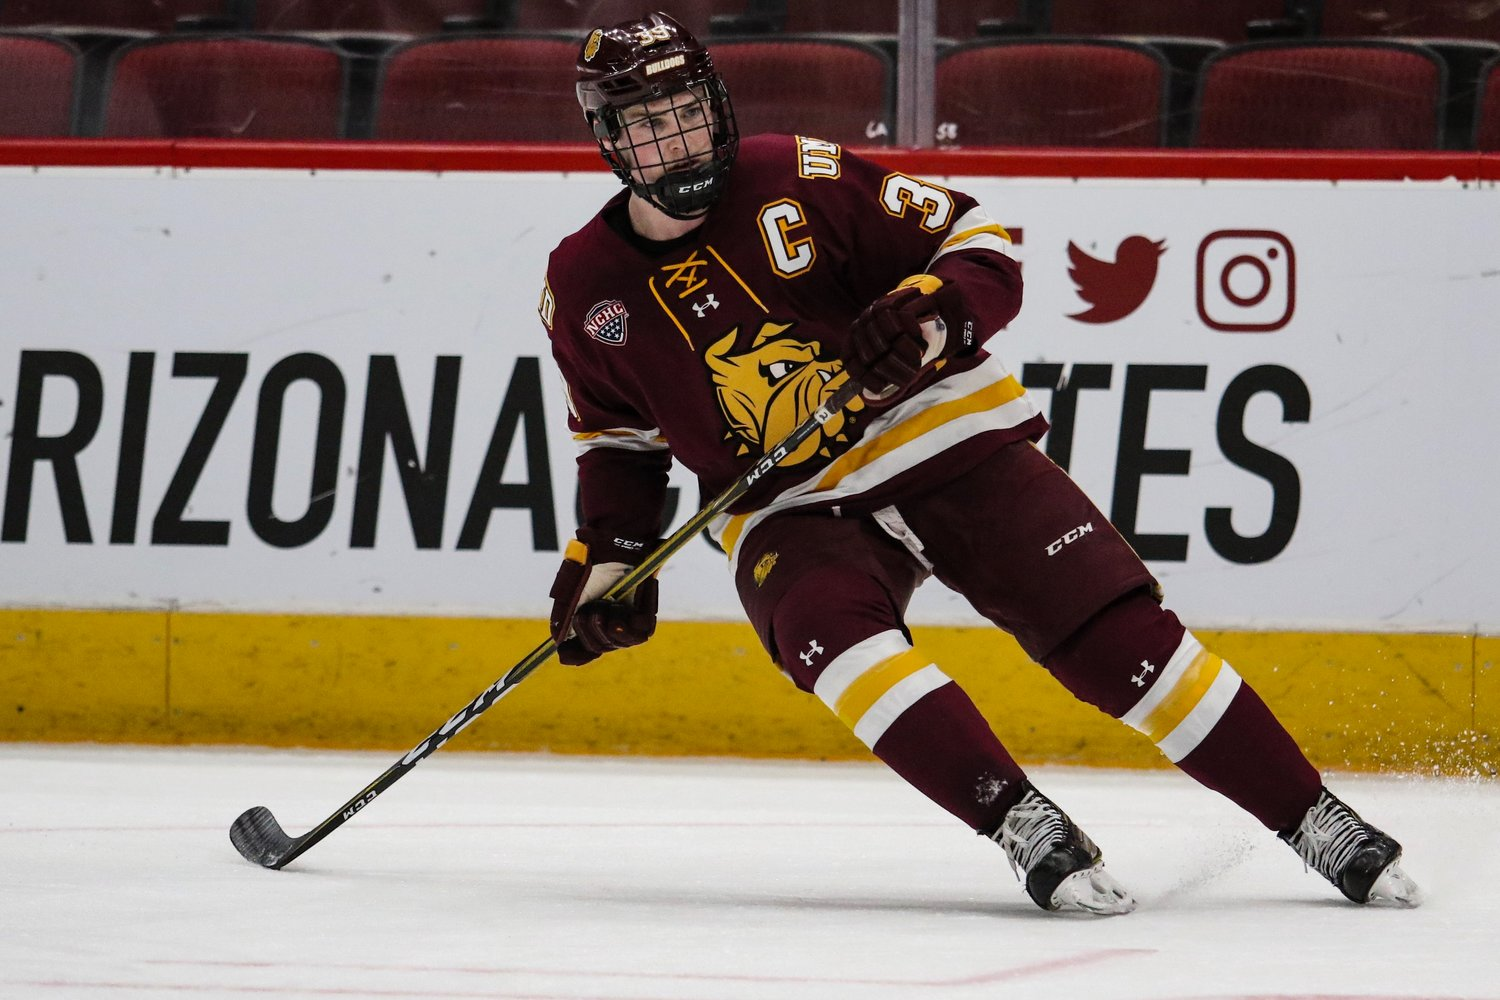 The Texas Stars added Minnesota-Duluth captain ad two-time national champion Parker MacKay for the 2019-20 season.